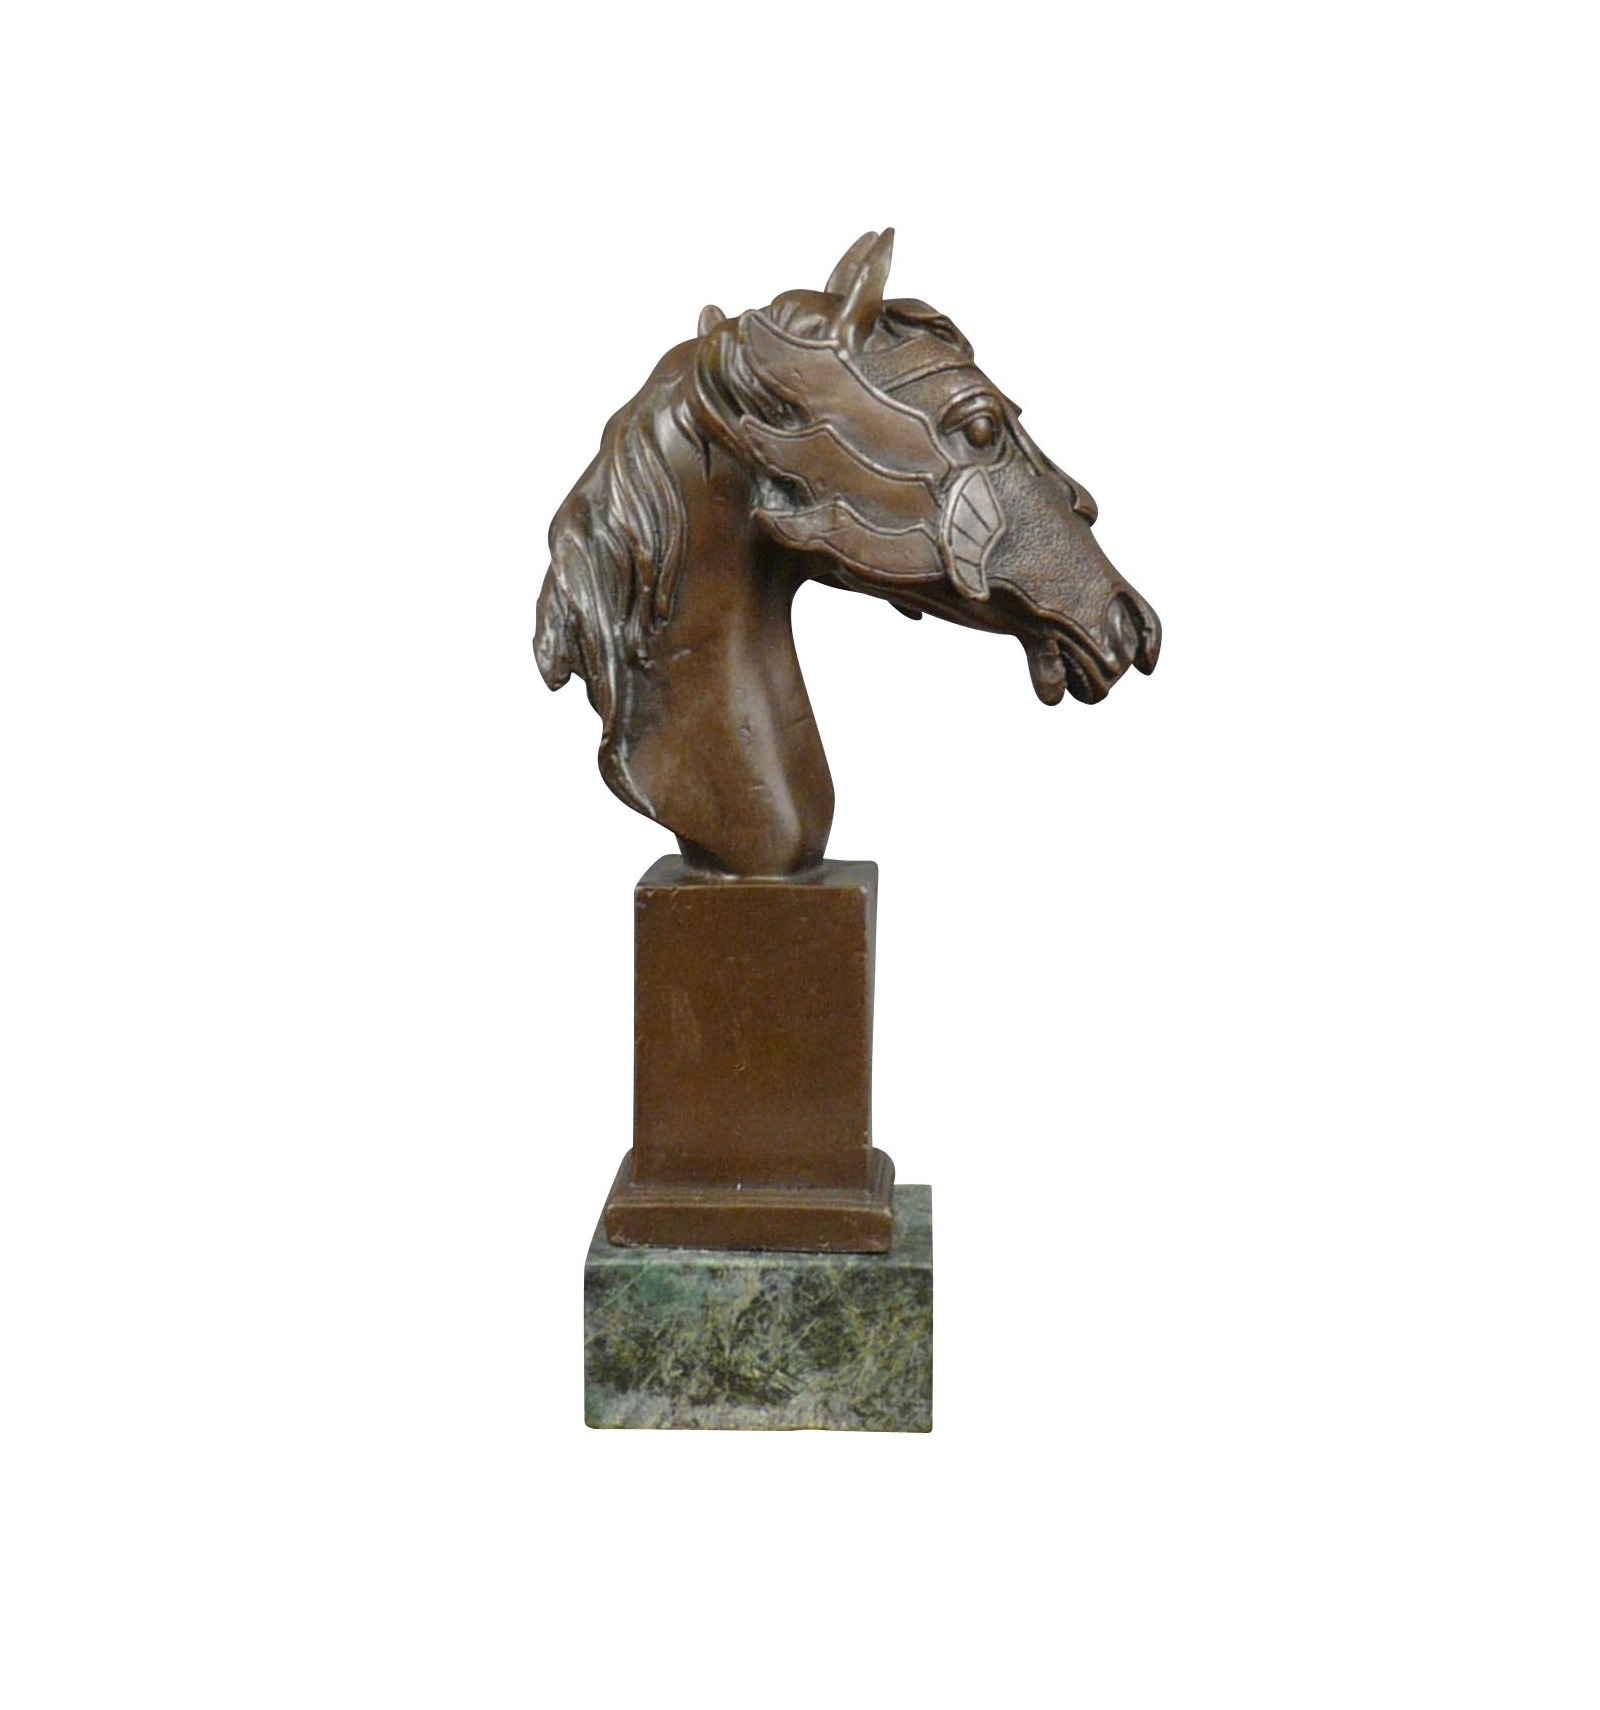 A Bronze Statue Of The Bust Of A Horse Sculpture Horse